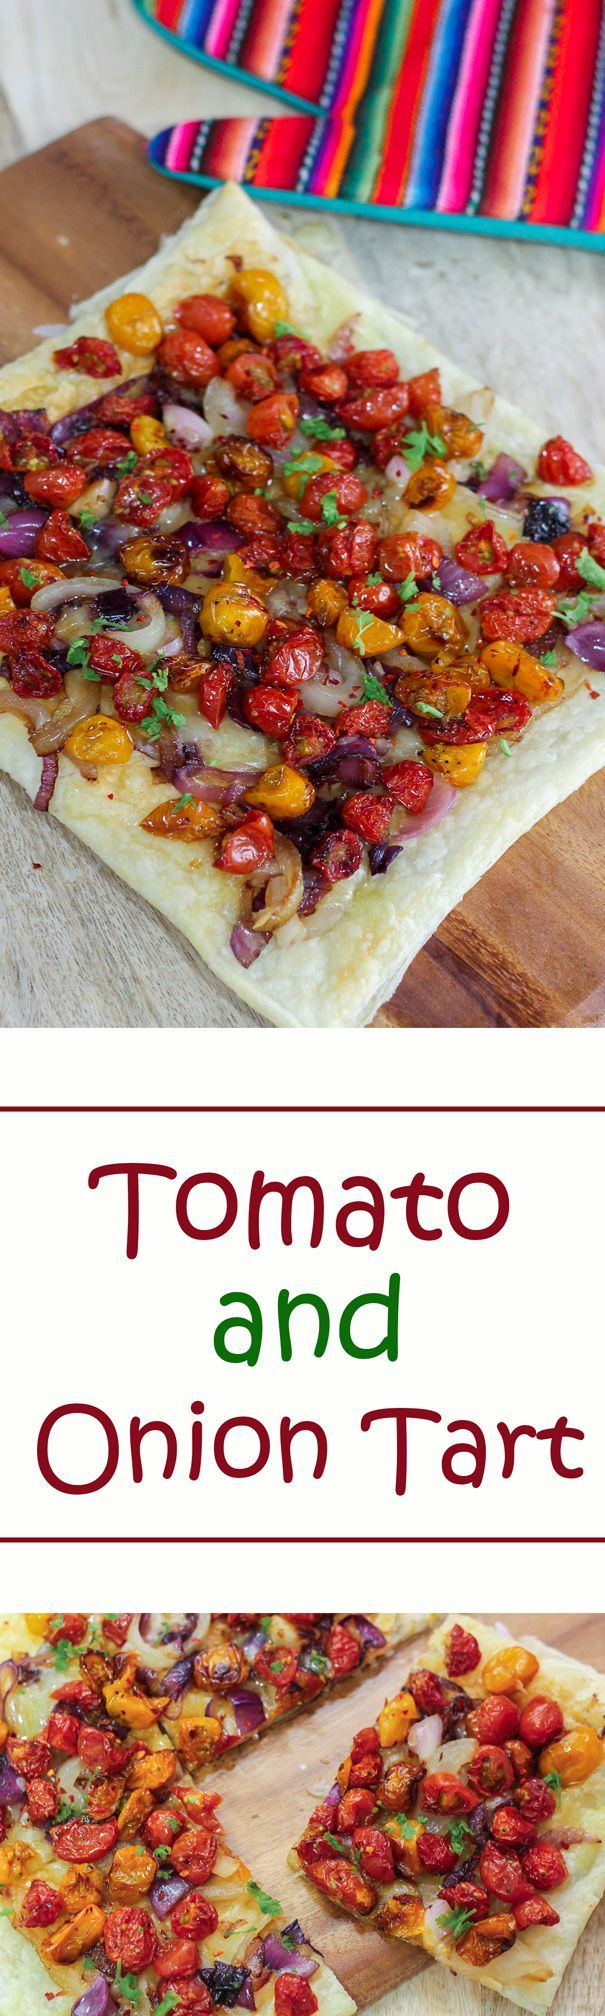 Do give this Tomato and Onion Tart a try. The tomatoes lend it's ...